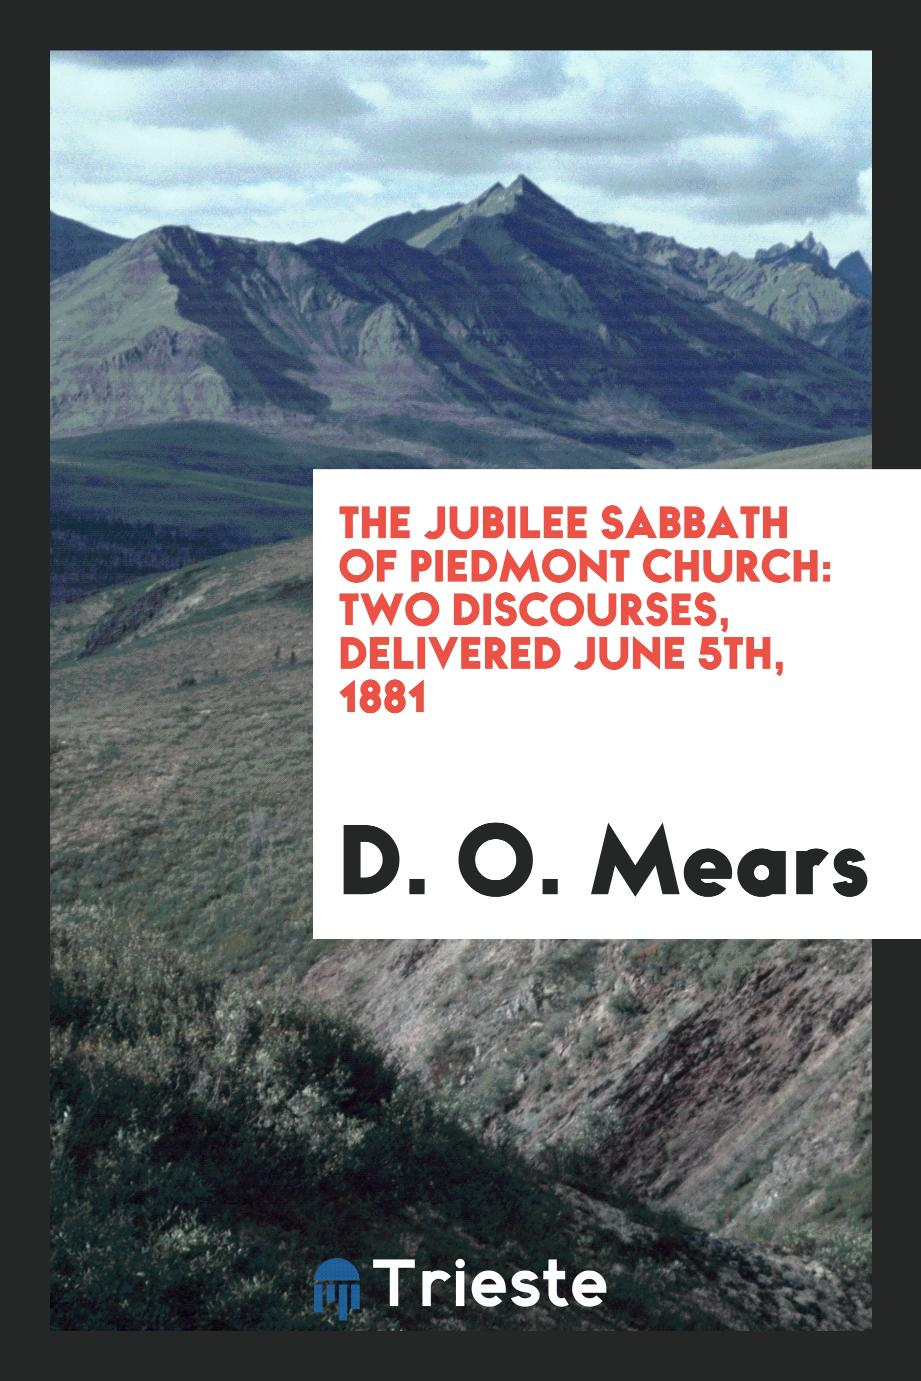 The jubilee Sabbath of Piedmont Church: Two discourses, delivered june 5th, 1881